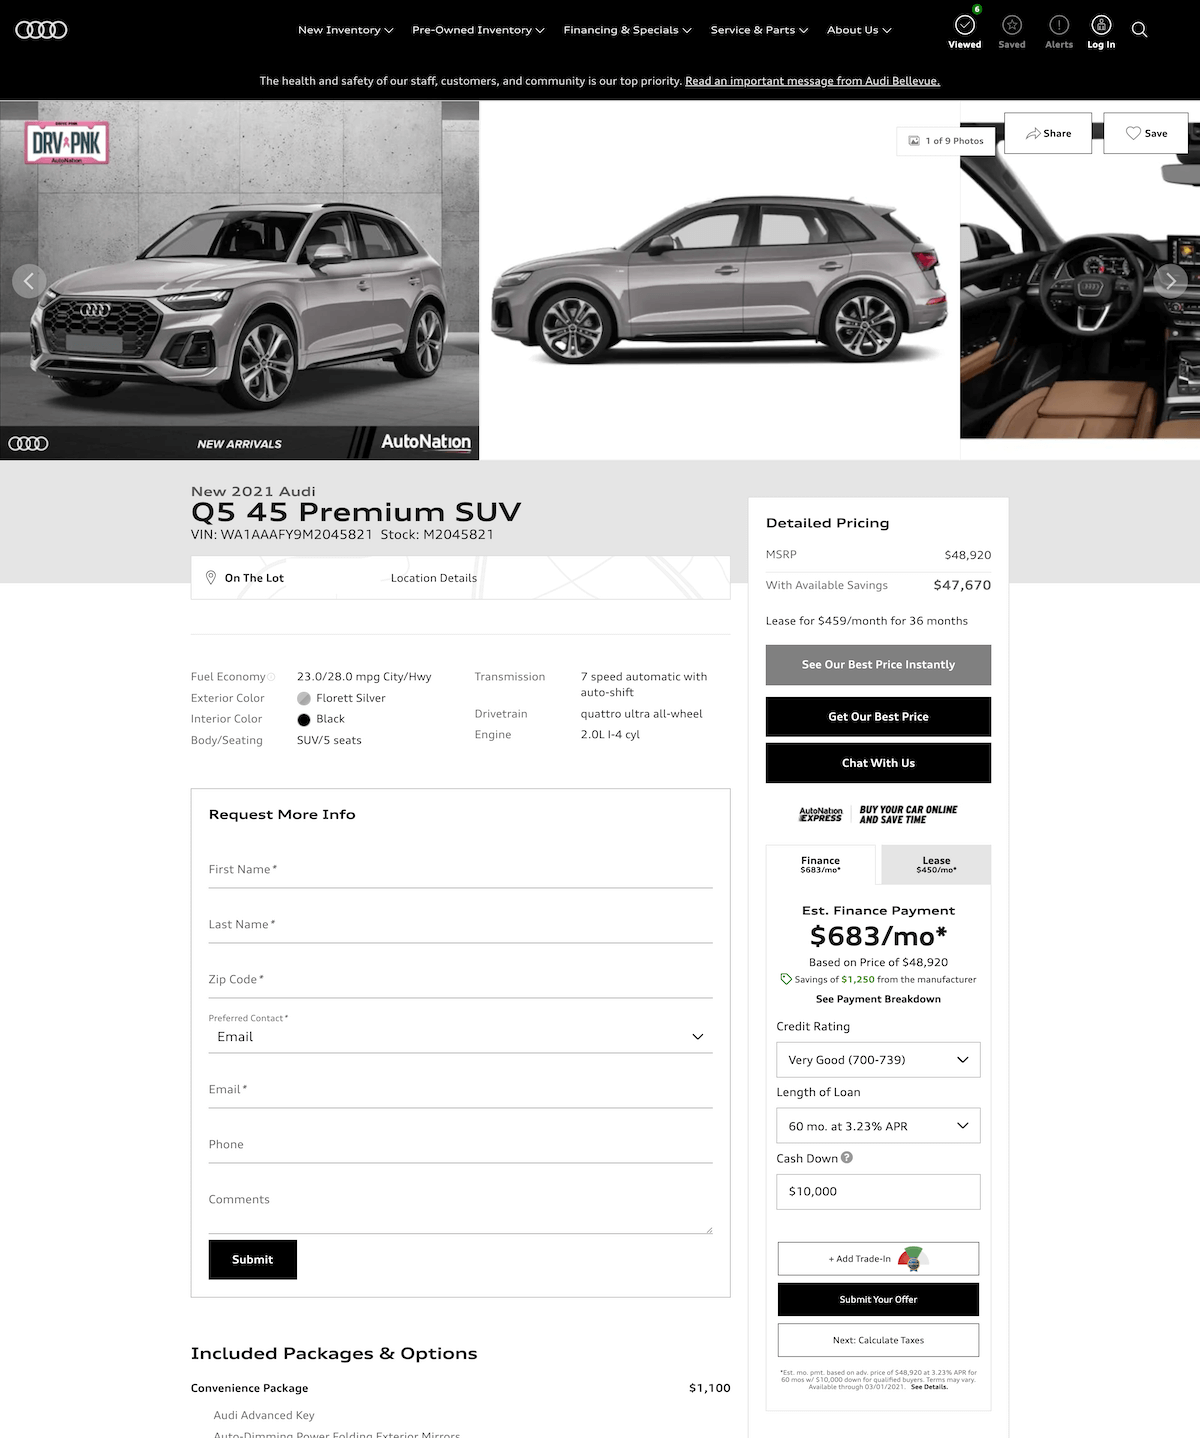 Audi Plano vehicle details page